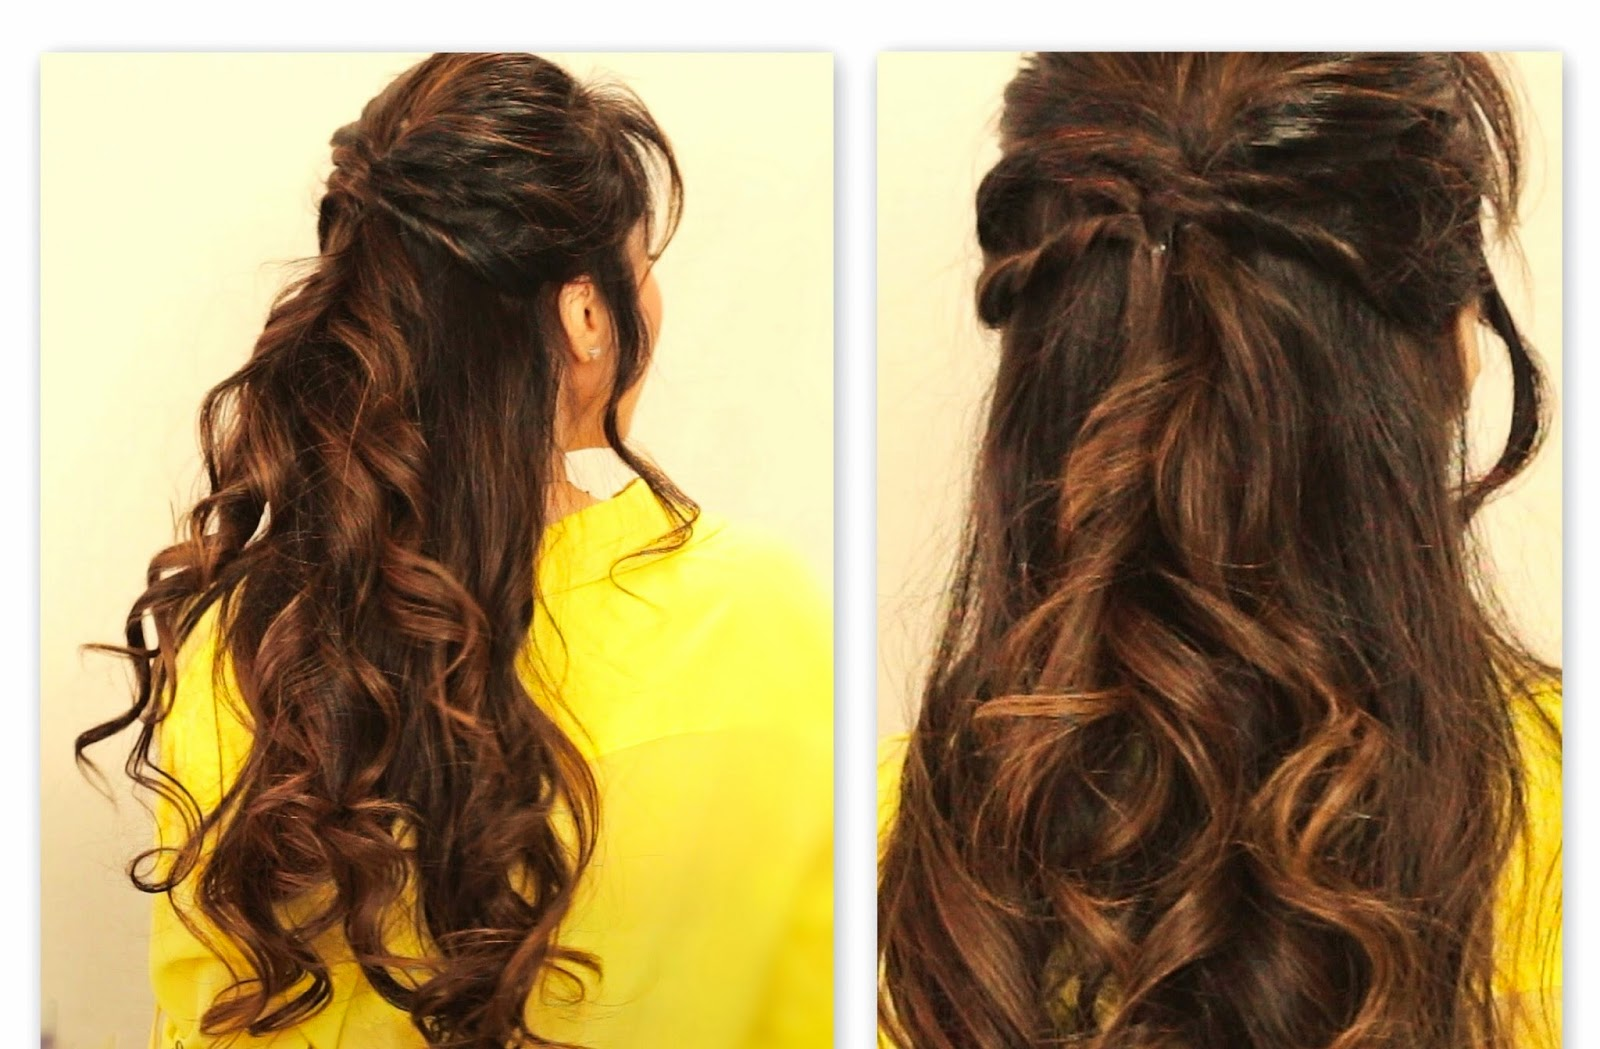 Hairstyles Up And Down : Hairstyle Images - Half up Half Down Prom Hairstyles Fairy Hairstyle ...